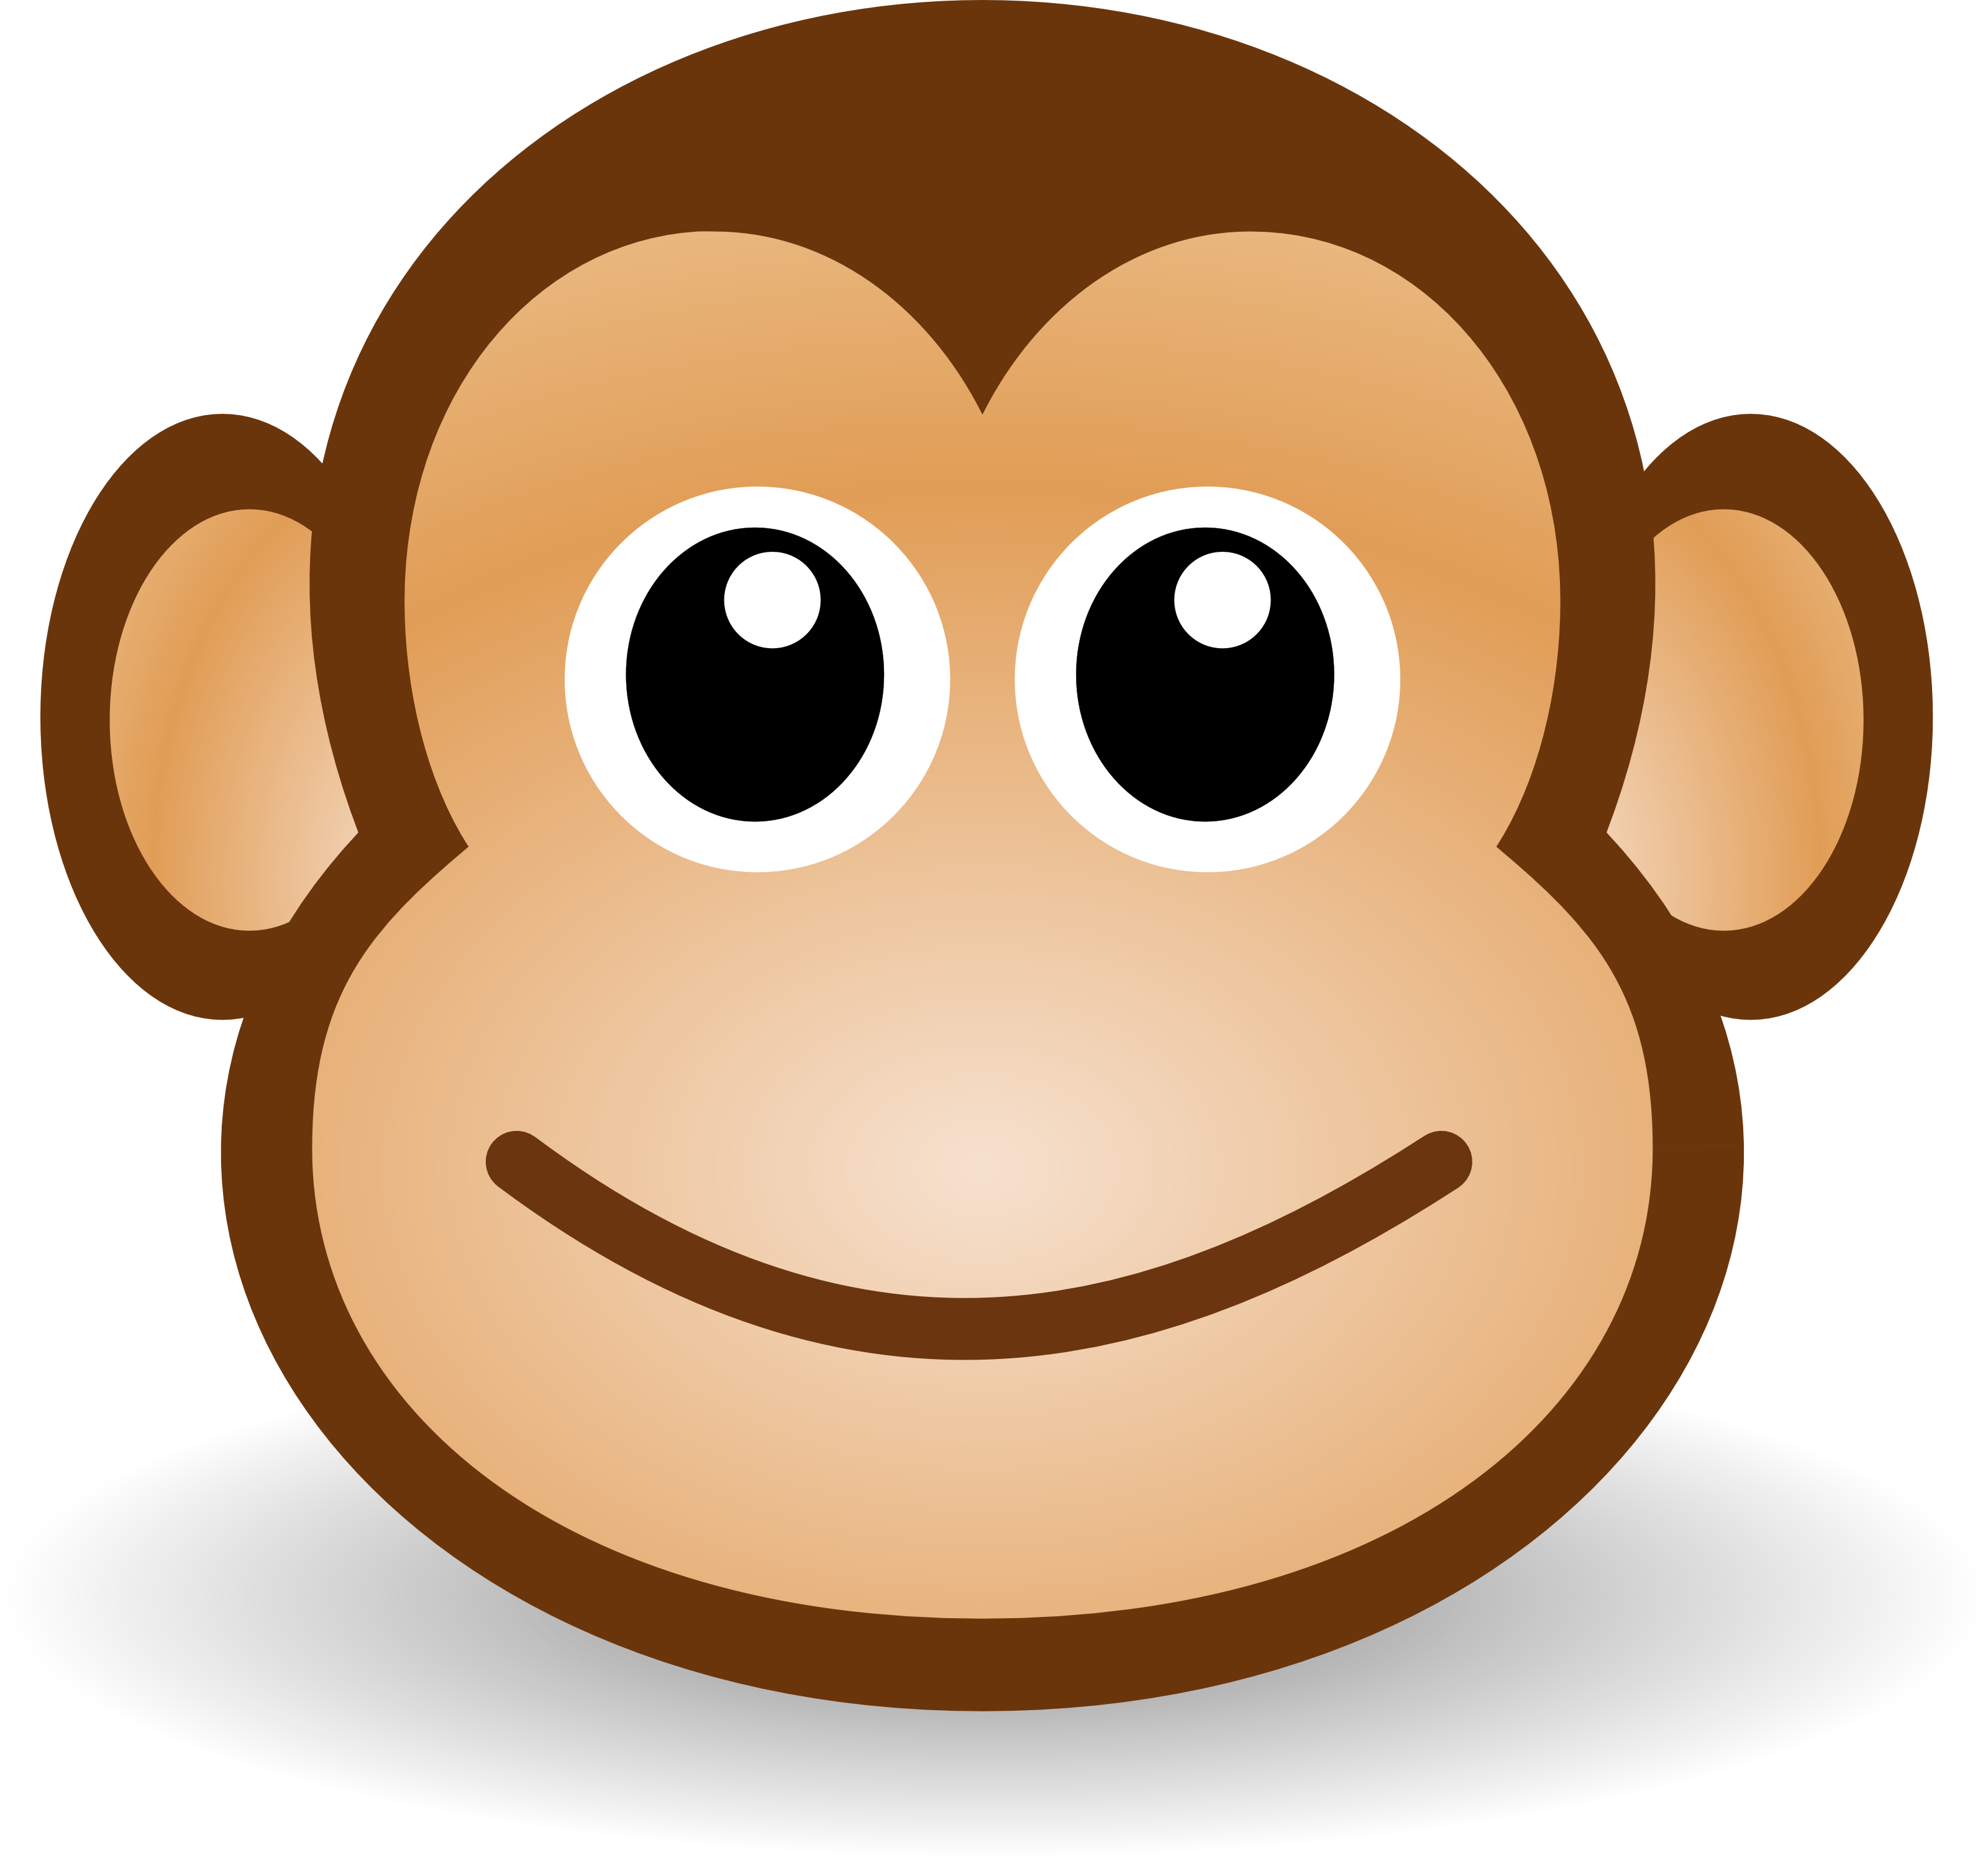 monkey, clipart jpg png eps svg cdr #19140